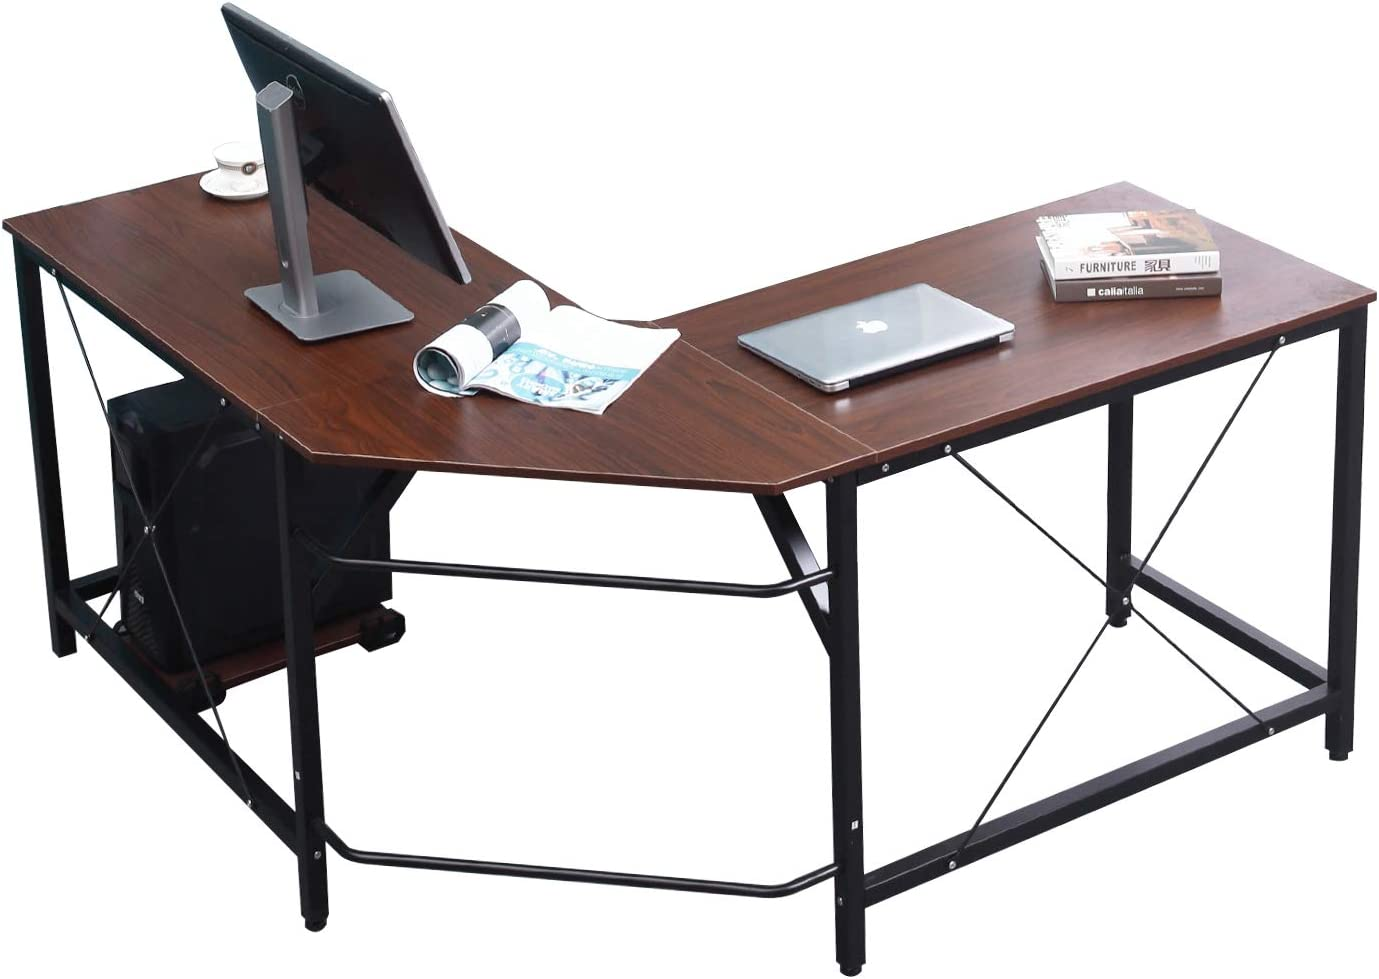 sogesfurniture Large L-Shaped Desk 59 x 59 inches Corner Table Computer Desk Workstation Desk PC Laptop Office Desk L Desk, Walnuet BHUS-LD-Z01-WA